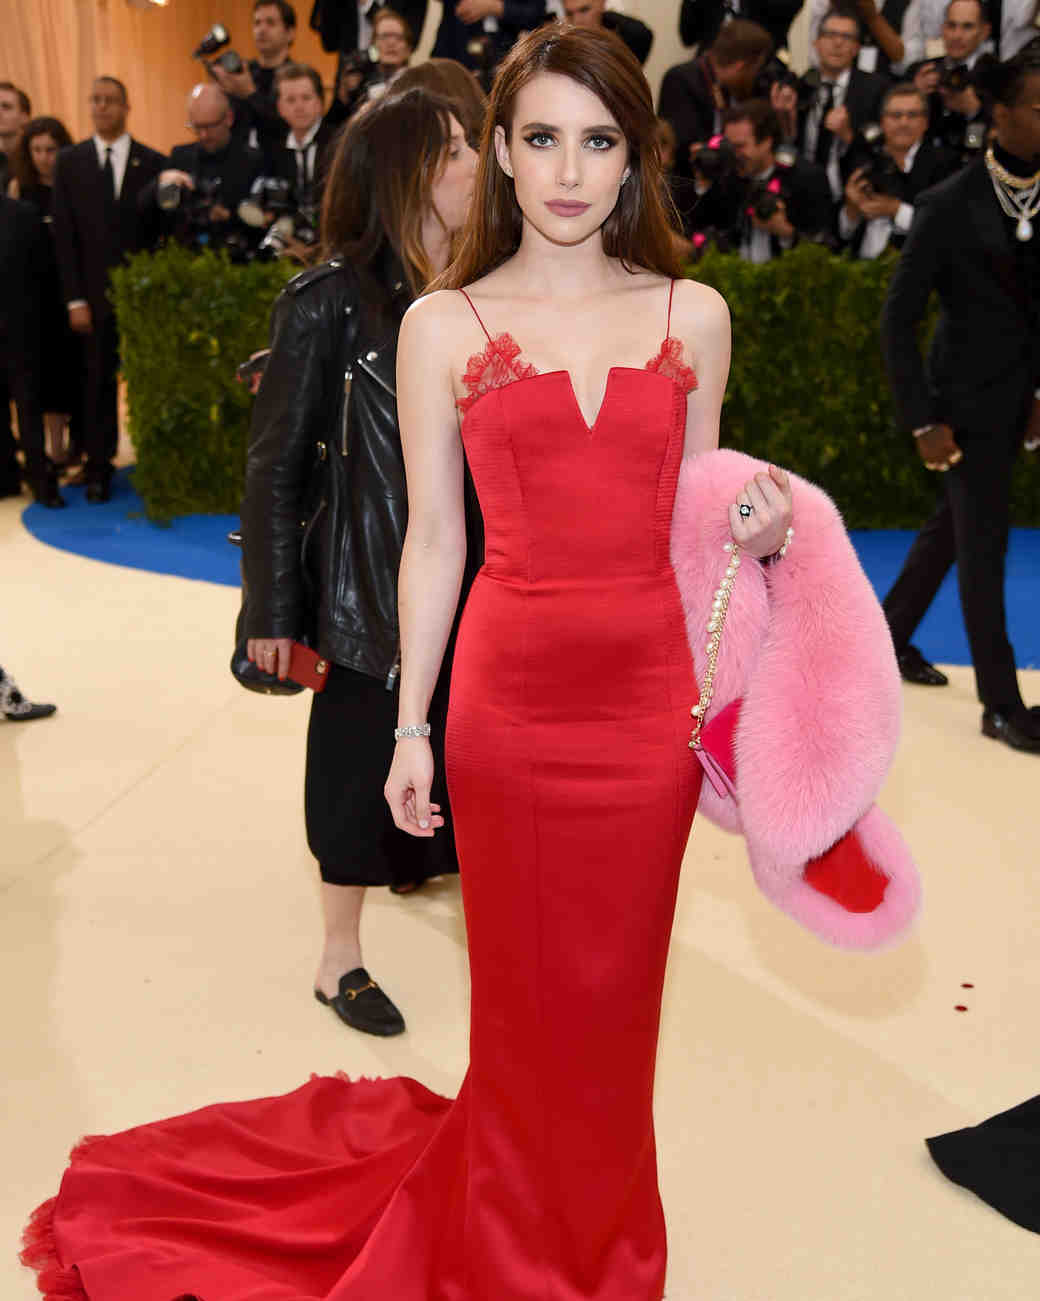 Met Gala 2017 The Best Dresses To Inspire Your Bridal Style